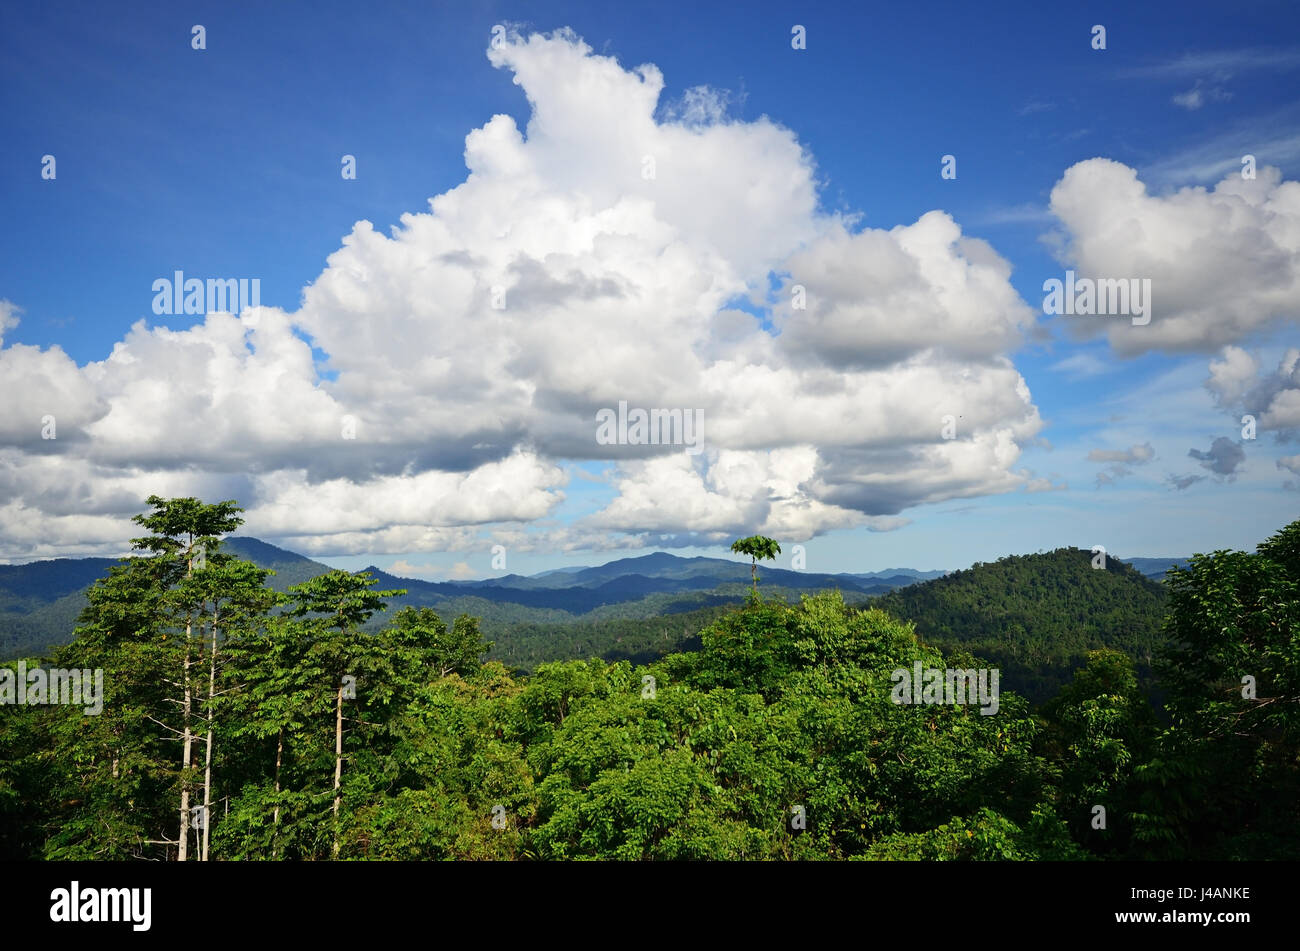 Primary jungle in Danum Valley Conservation park in Sabah Borneo, Malaysia. - Stock Image